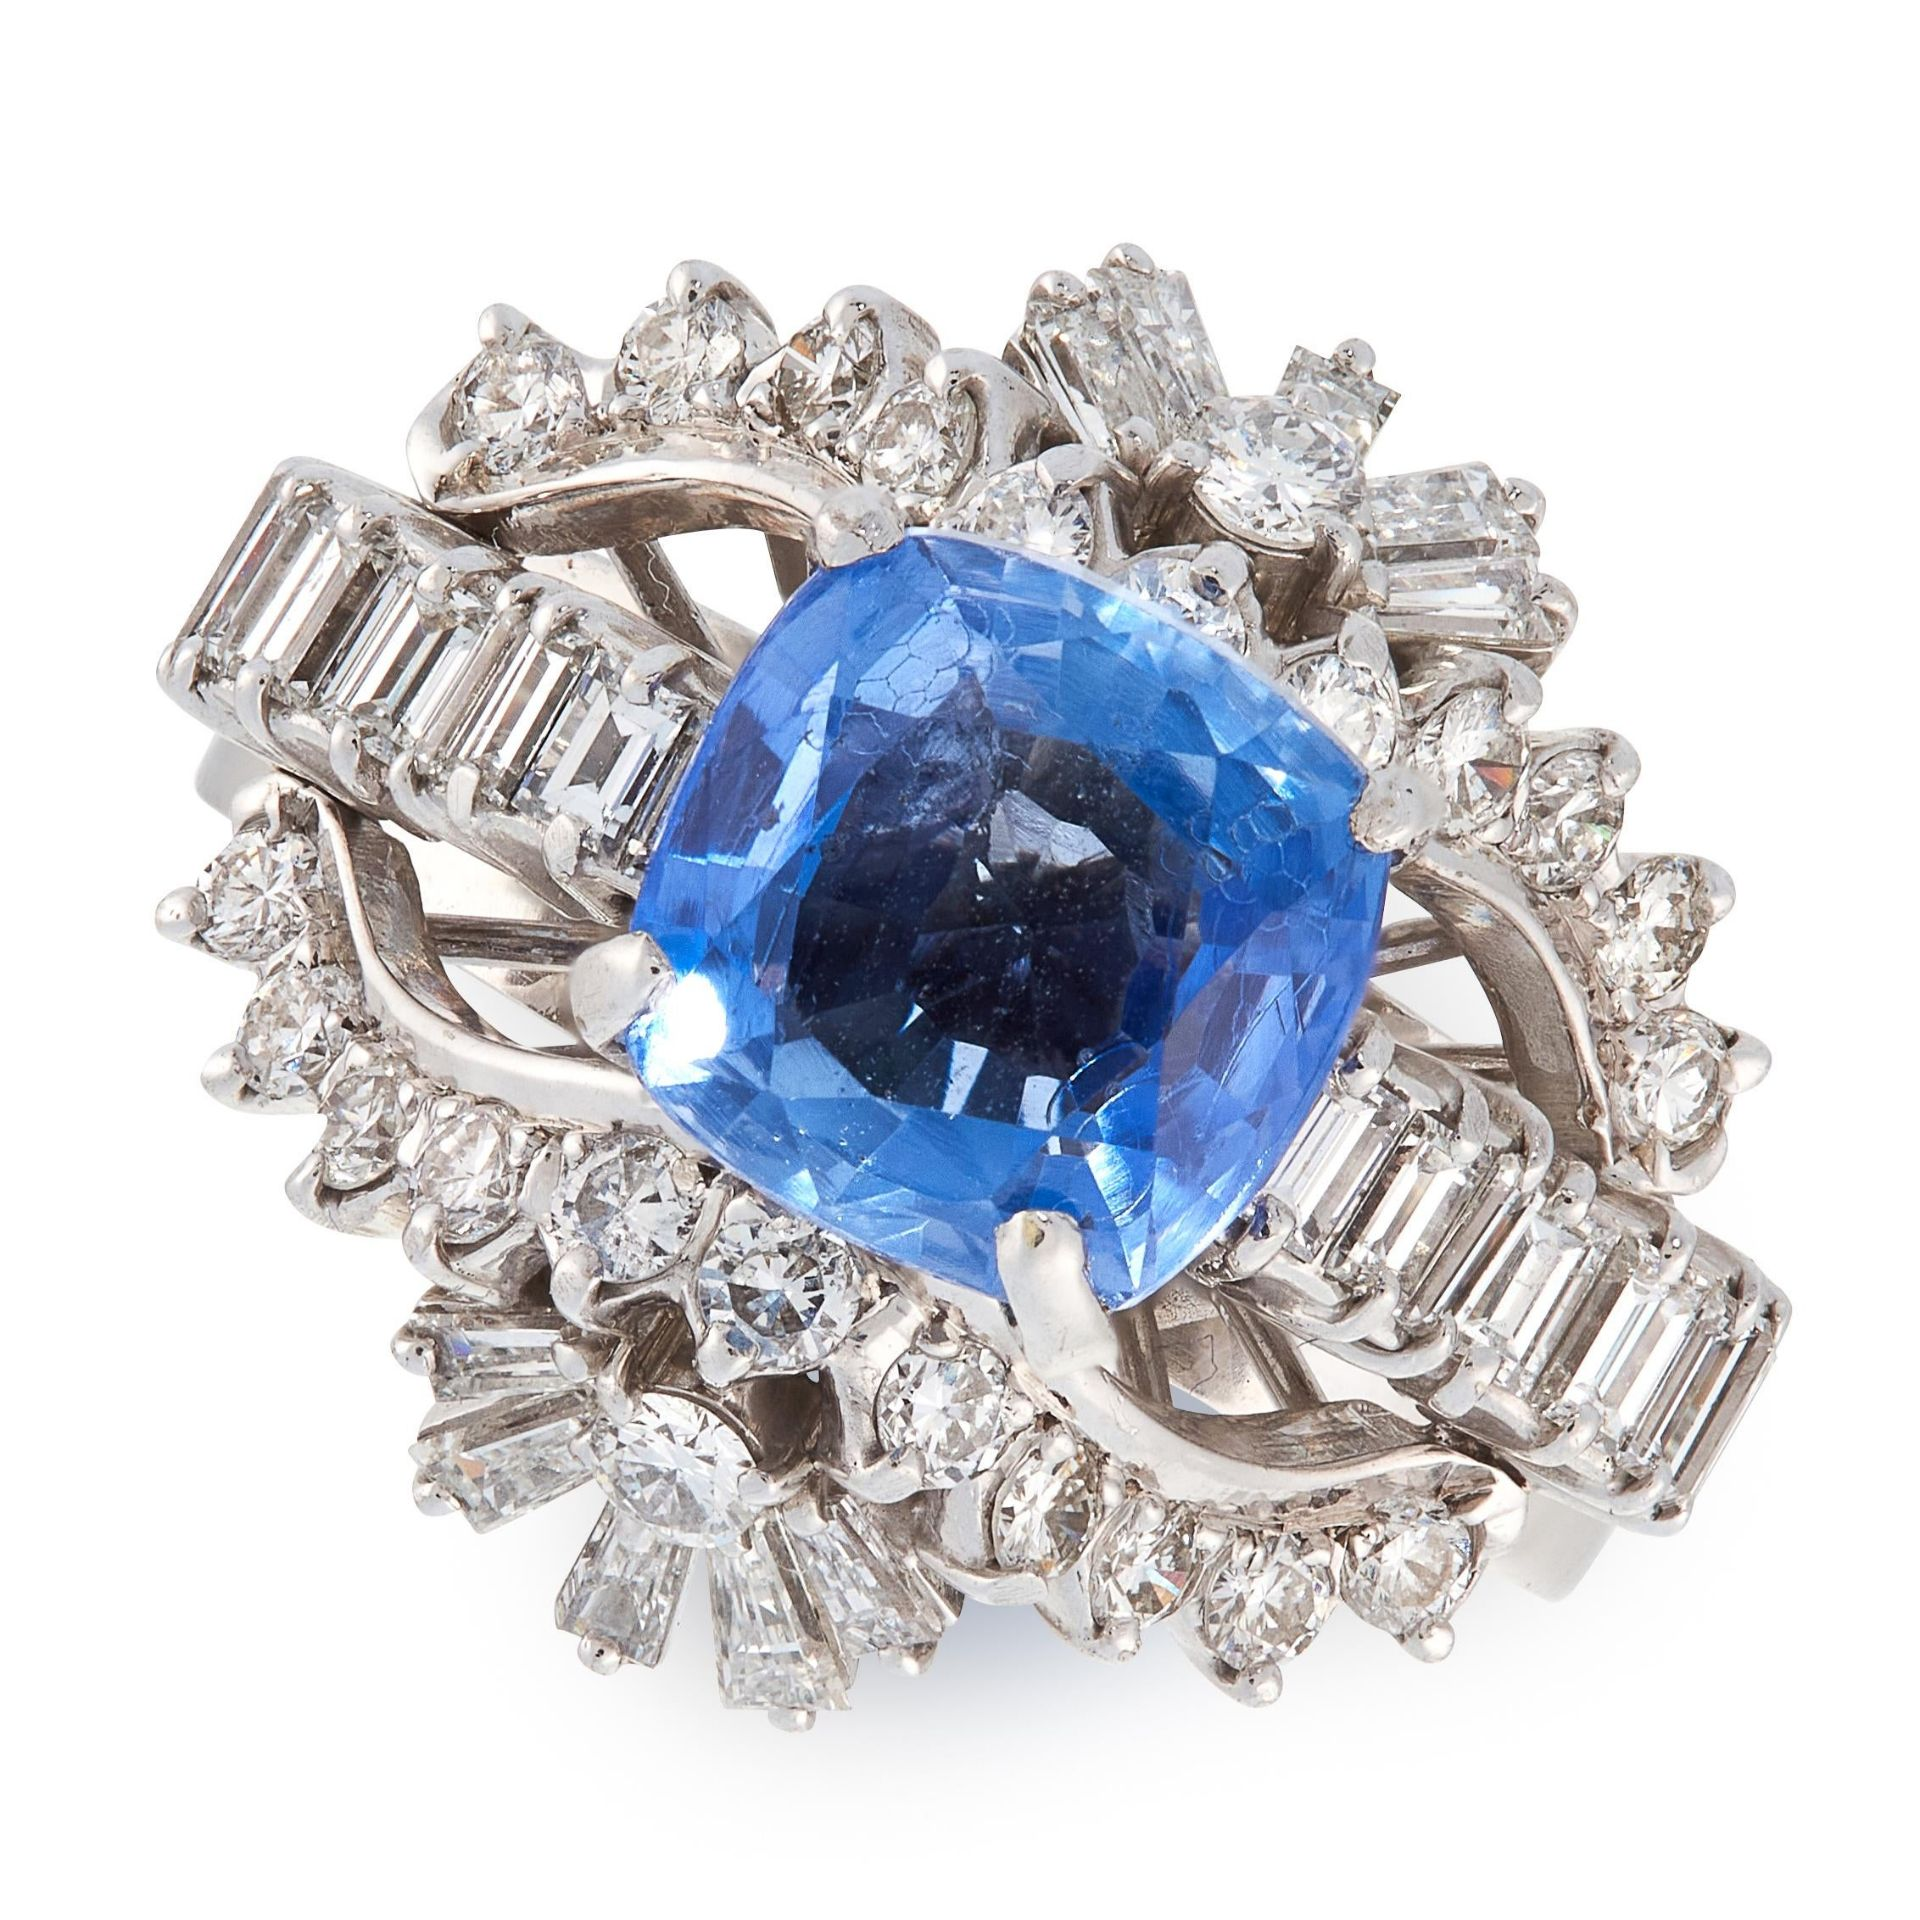 A SAPPHIRE AND DIAMOND DRESS RING, MANNING in 14ct white gold, set with a cushion cut blue